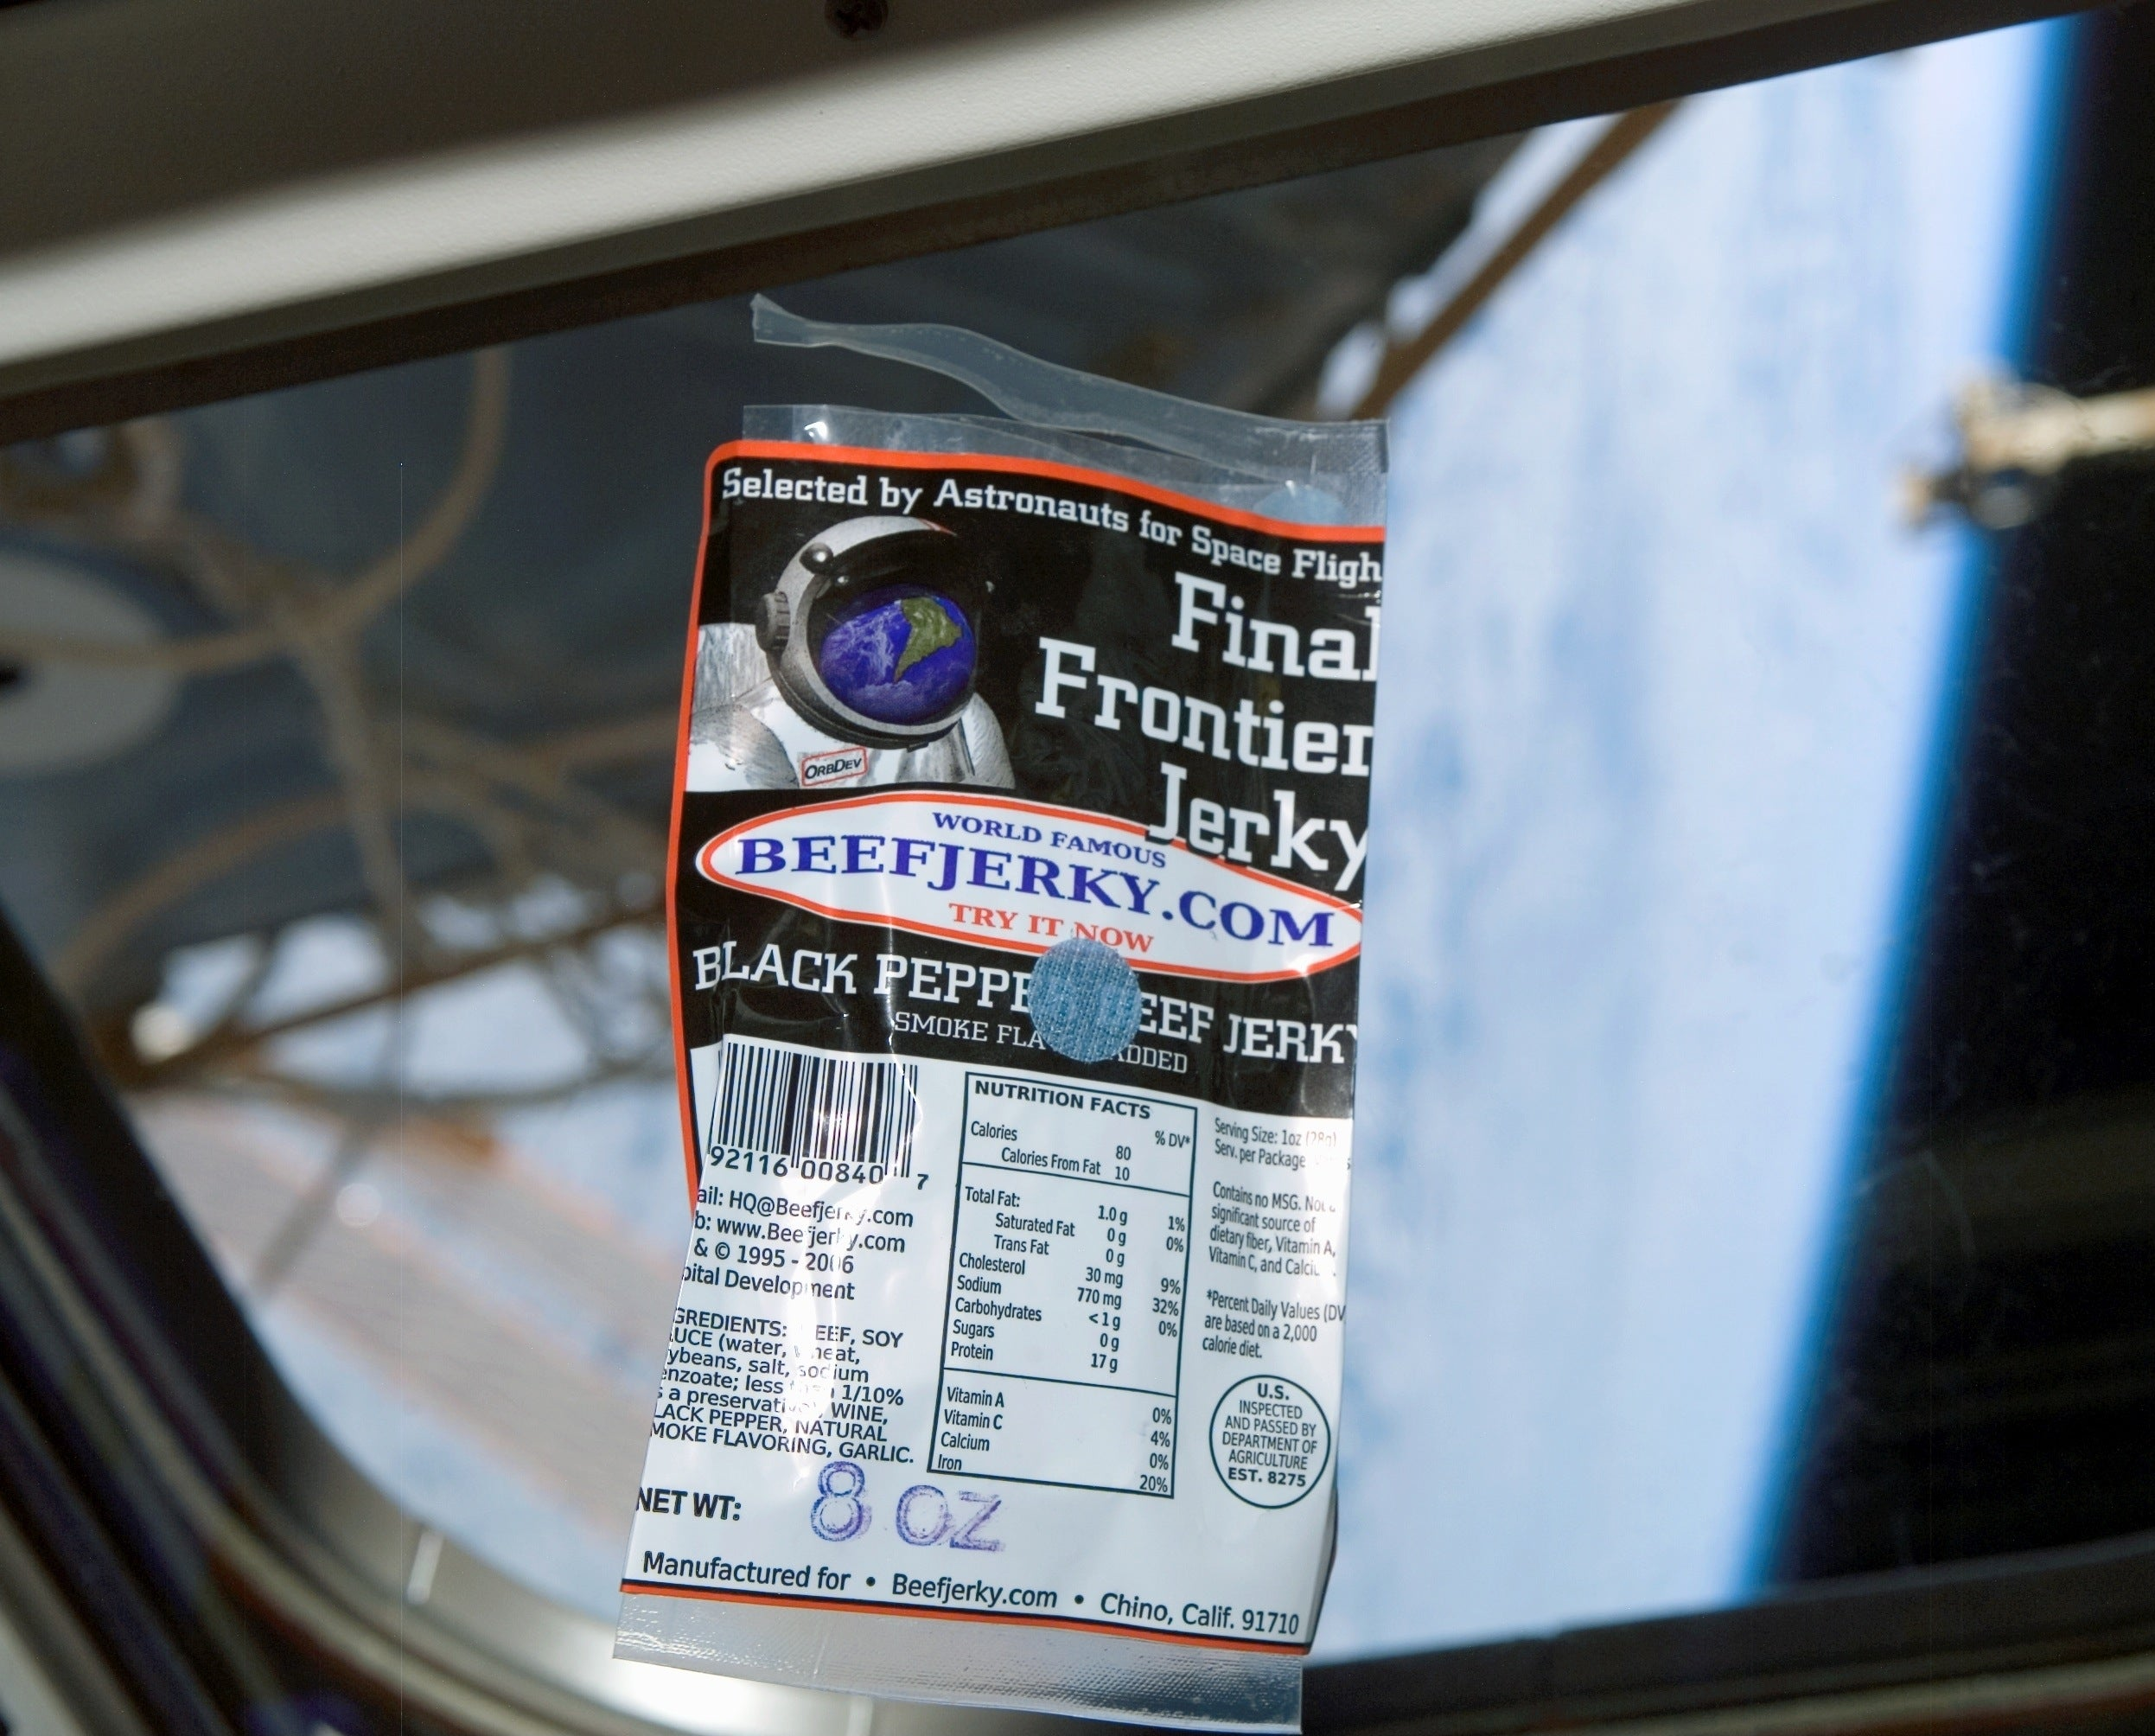 Beef Jerky on International Space Station with Earth visible out the big window. Carried to ISS aboard STS-118, Endevour Space Shuttle flight.